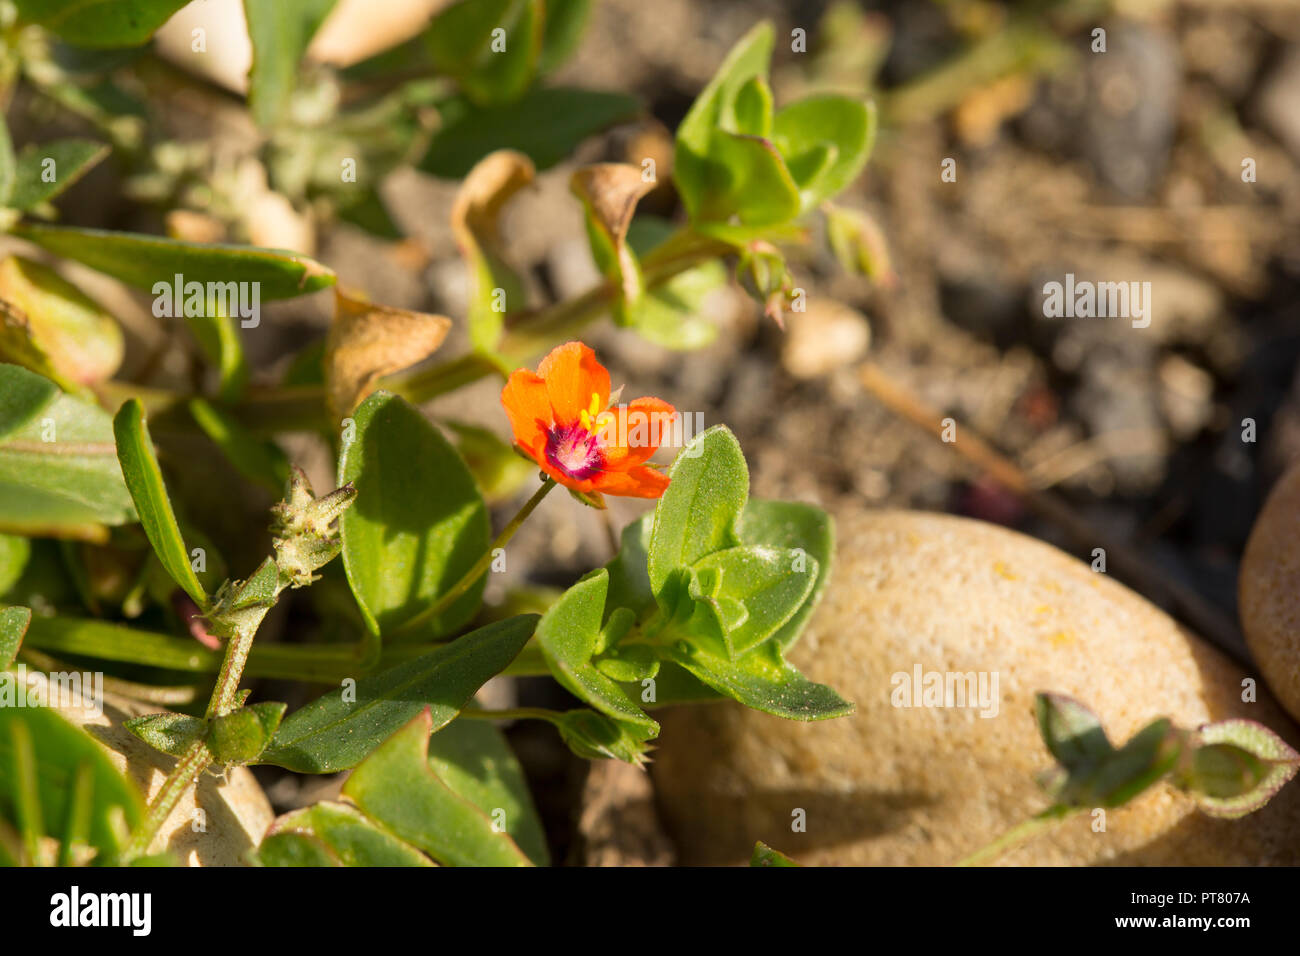 Flowering Scarlet Pimpernel, Anagallis arvensis, growing in shingle behind Chesil beach near the Isle of Portland. Dorset England UK GB. Stock Photo